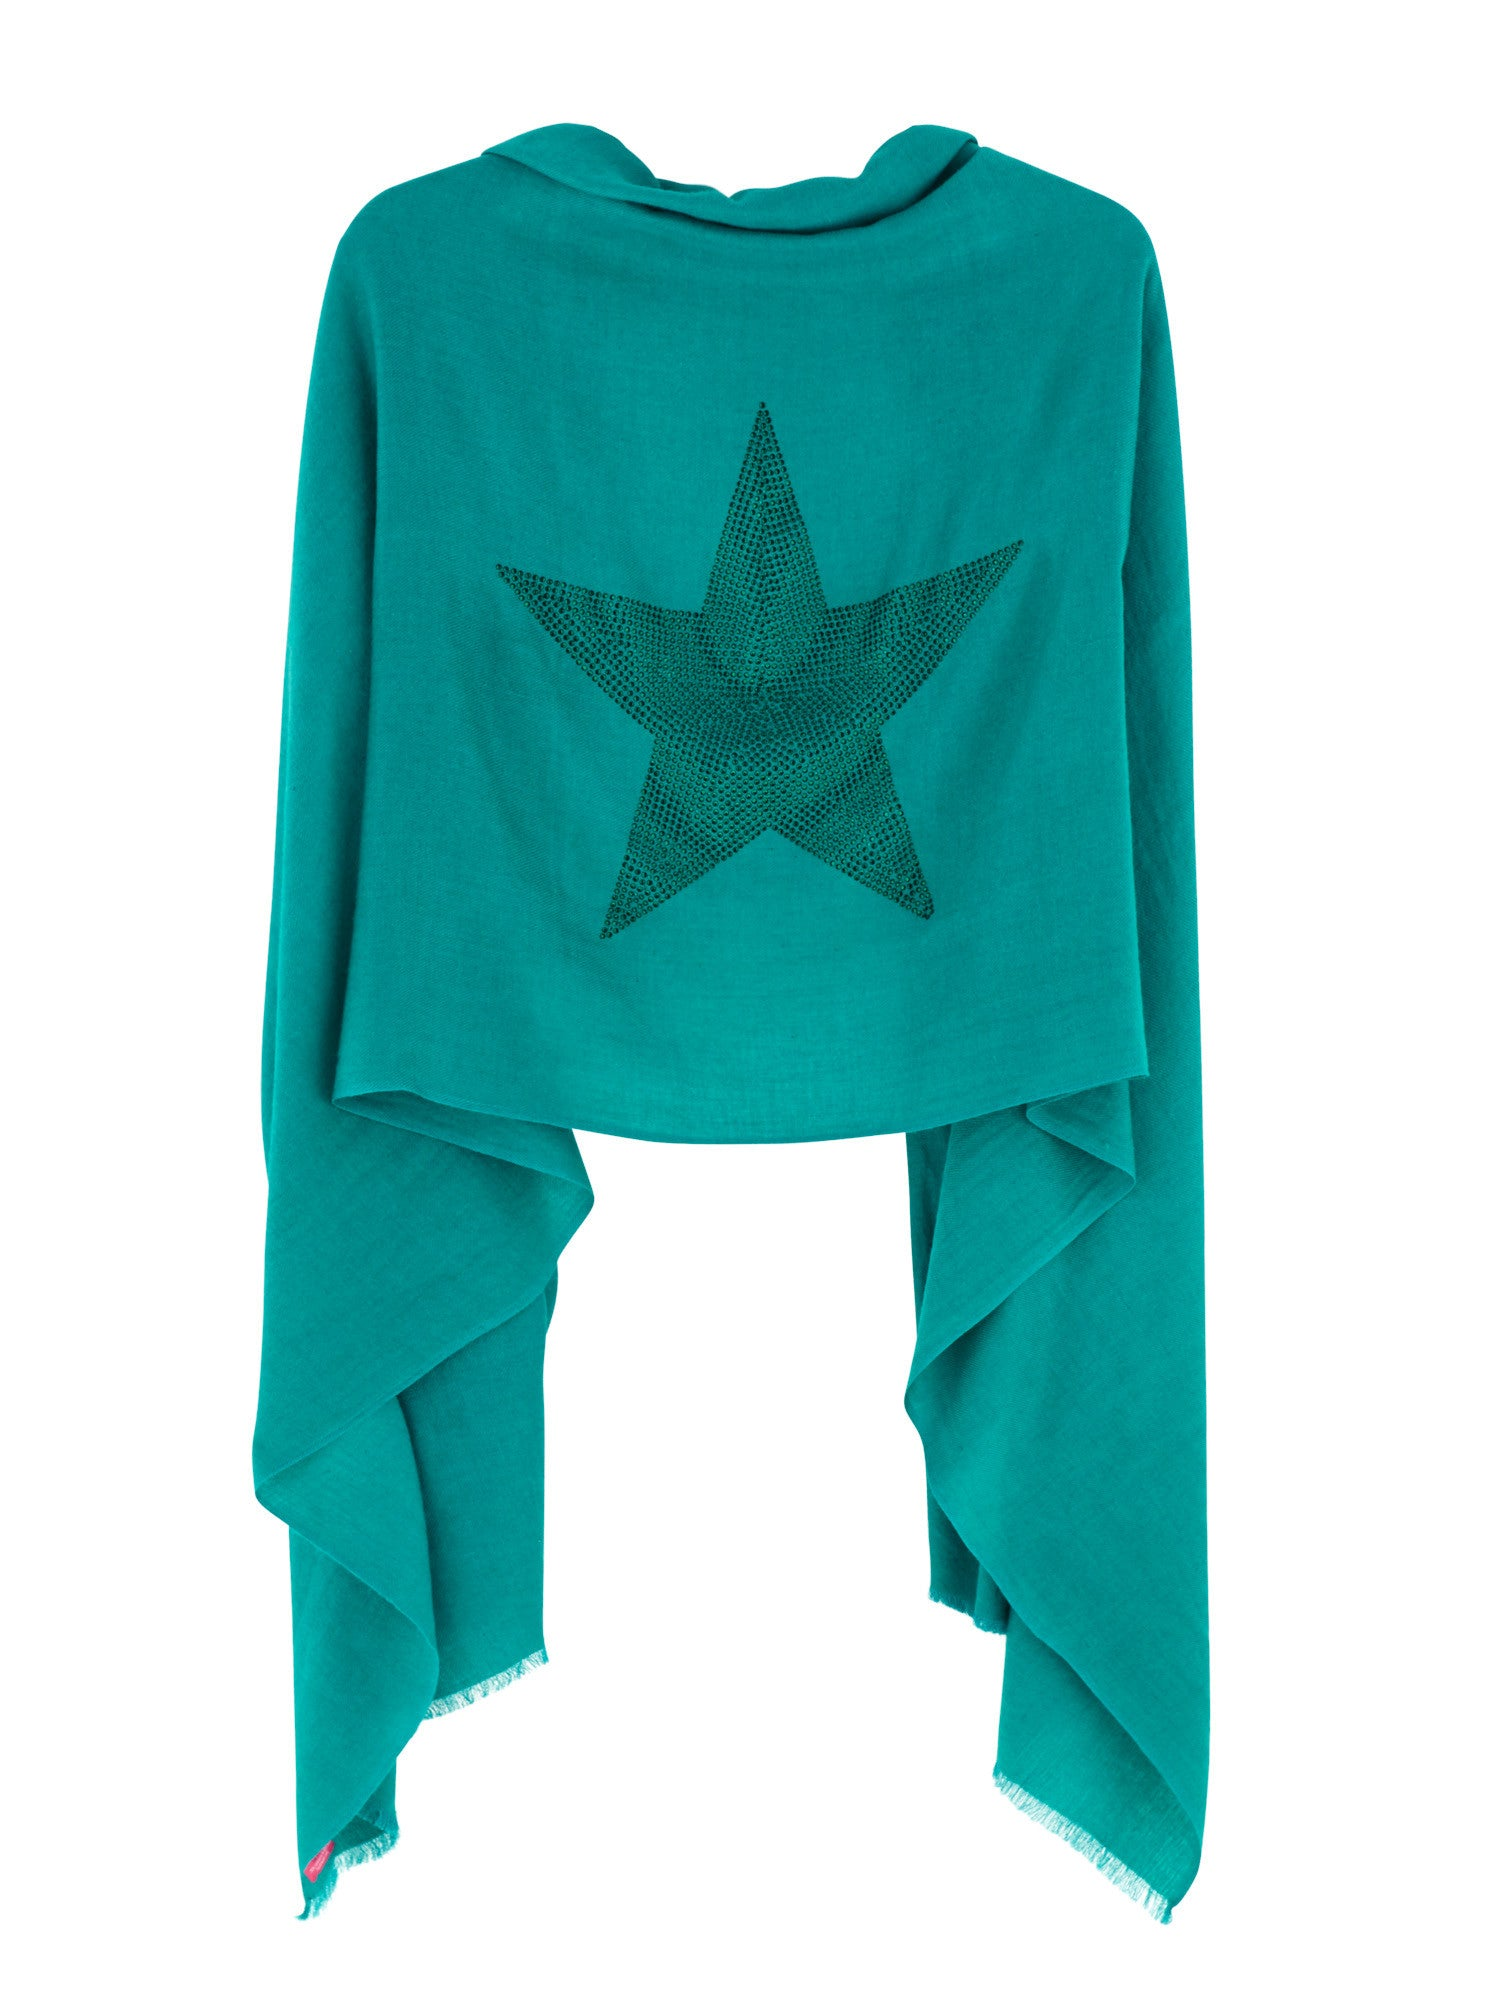 Crystal embellished cashmere pashmina shawl, green with star